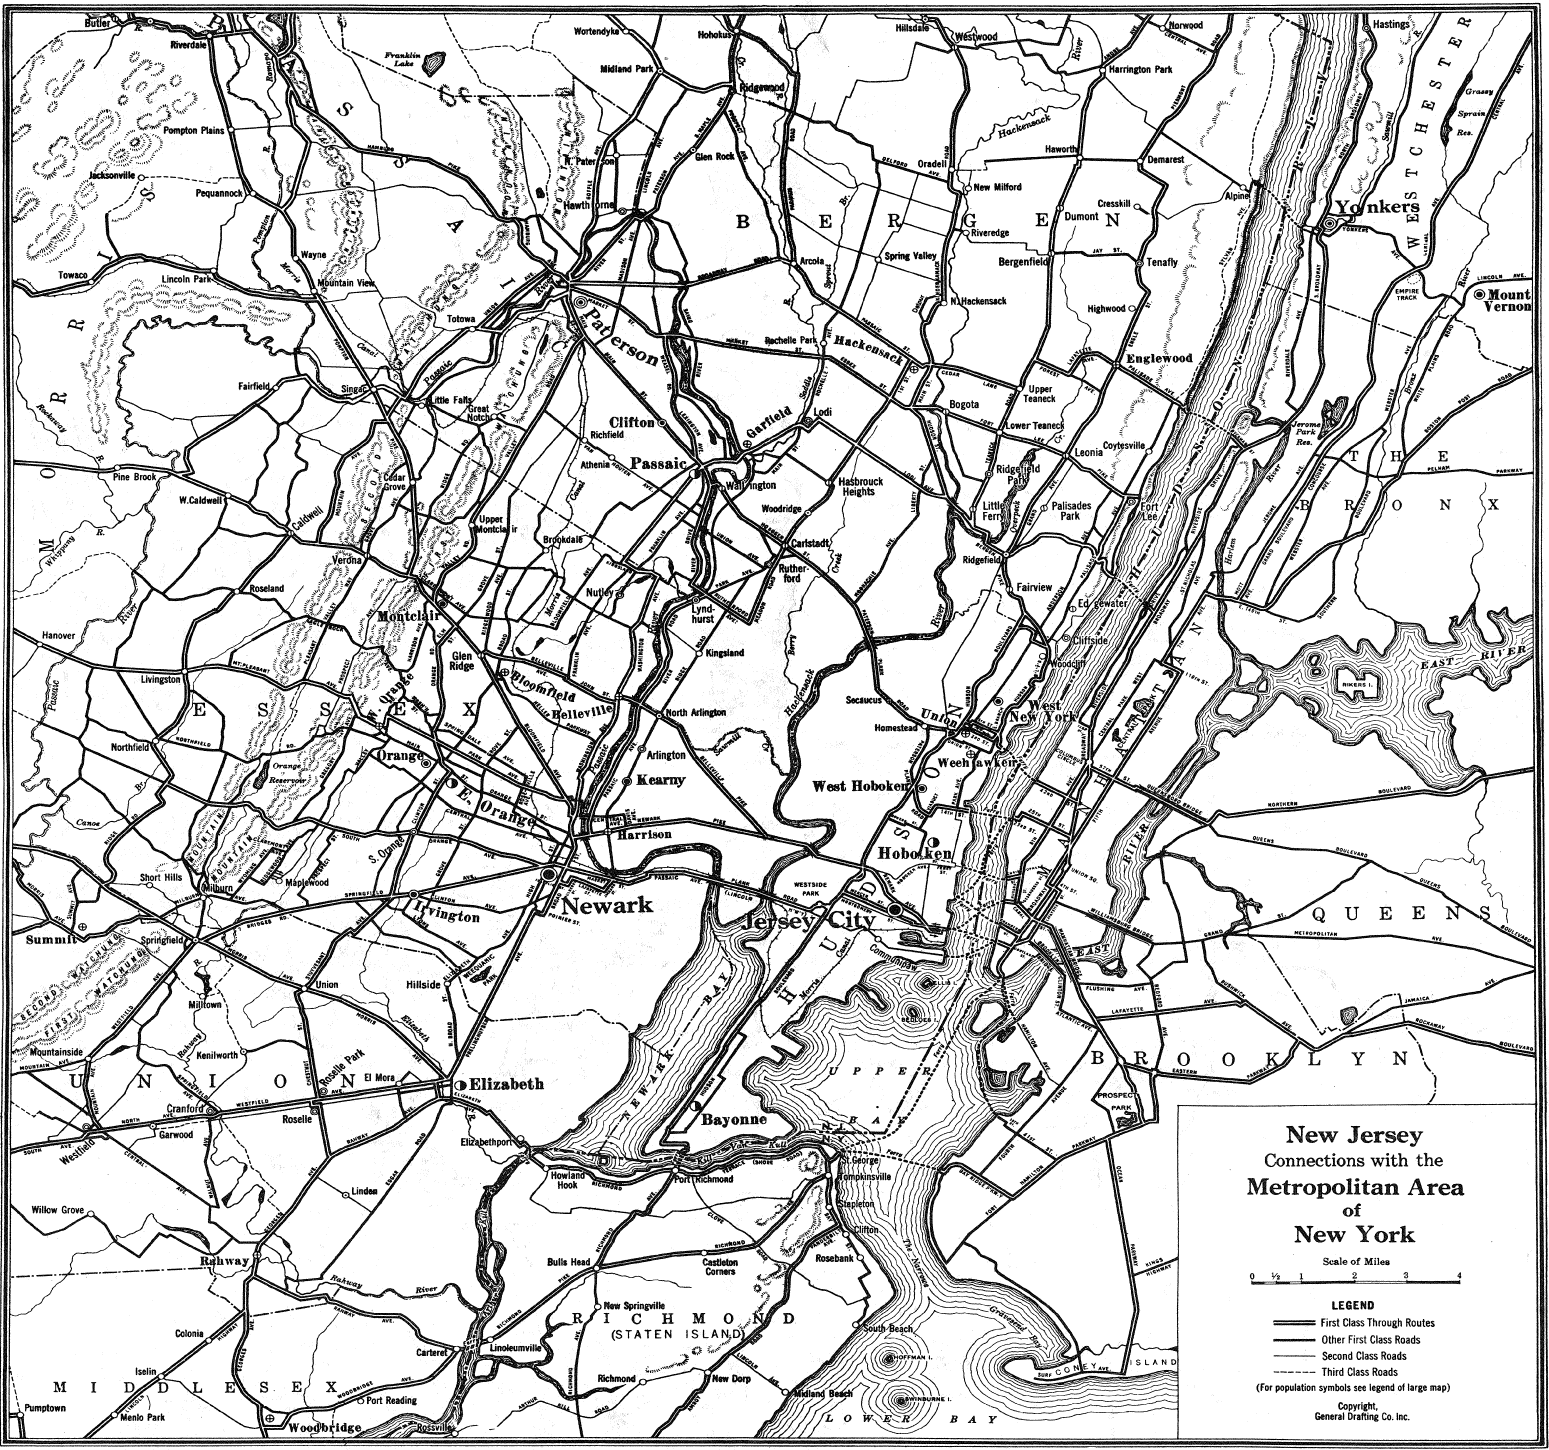 New Jersey Highway Old Map